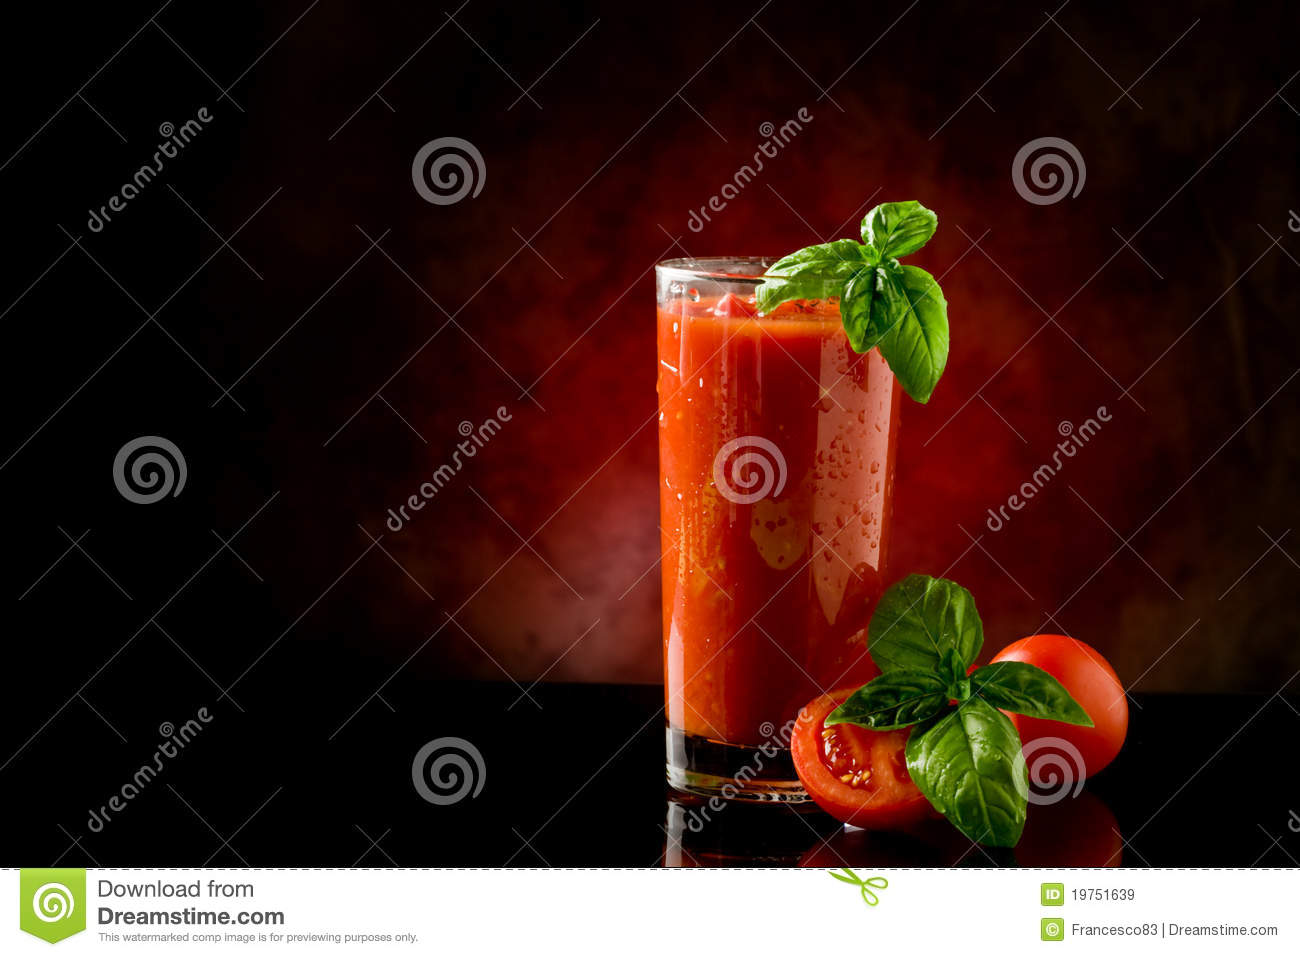 Tomate-Saft-Bloody- Marycocktail